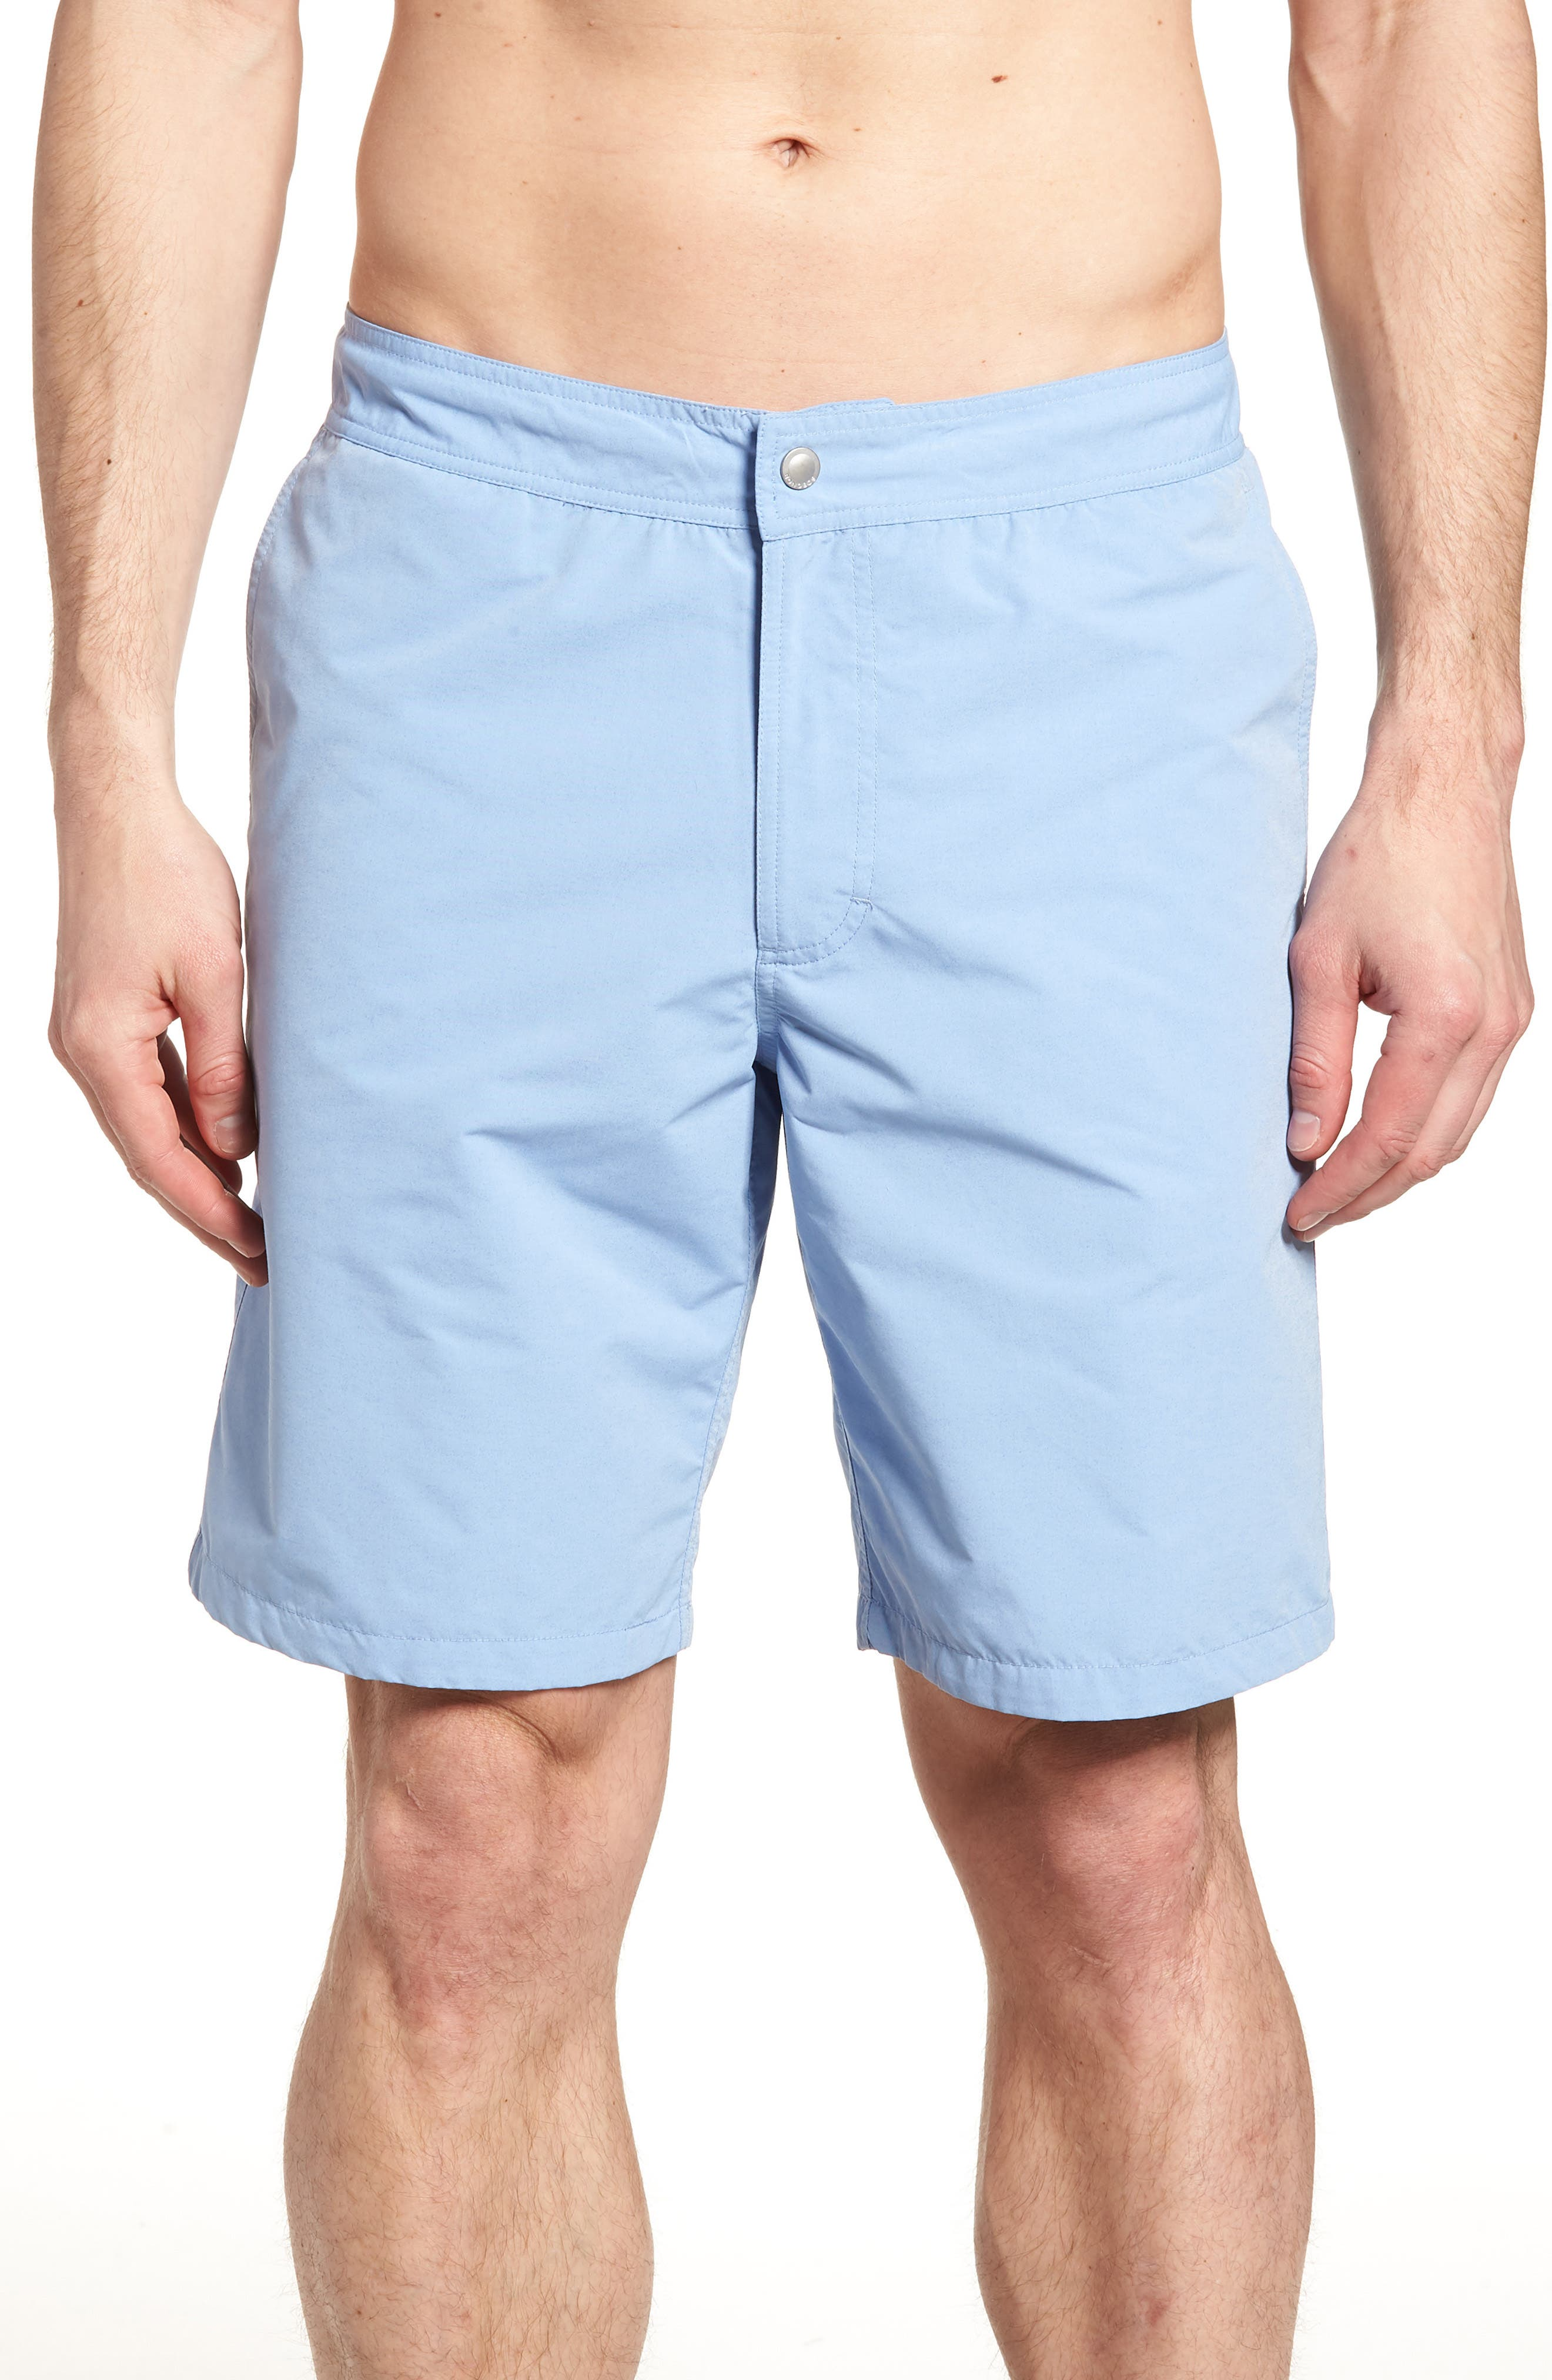 Main Image - Bonobos Banzai 9-Inch Swim Trunks